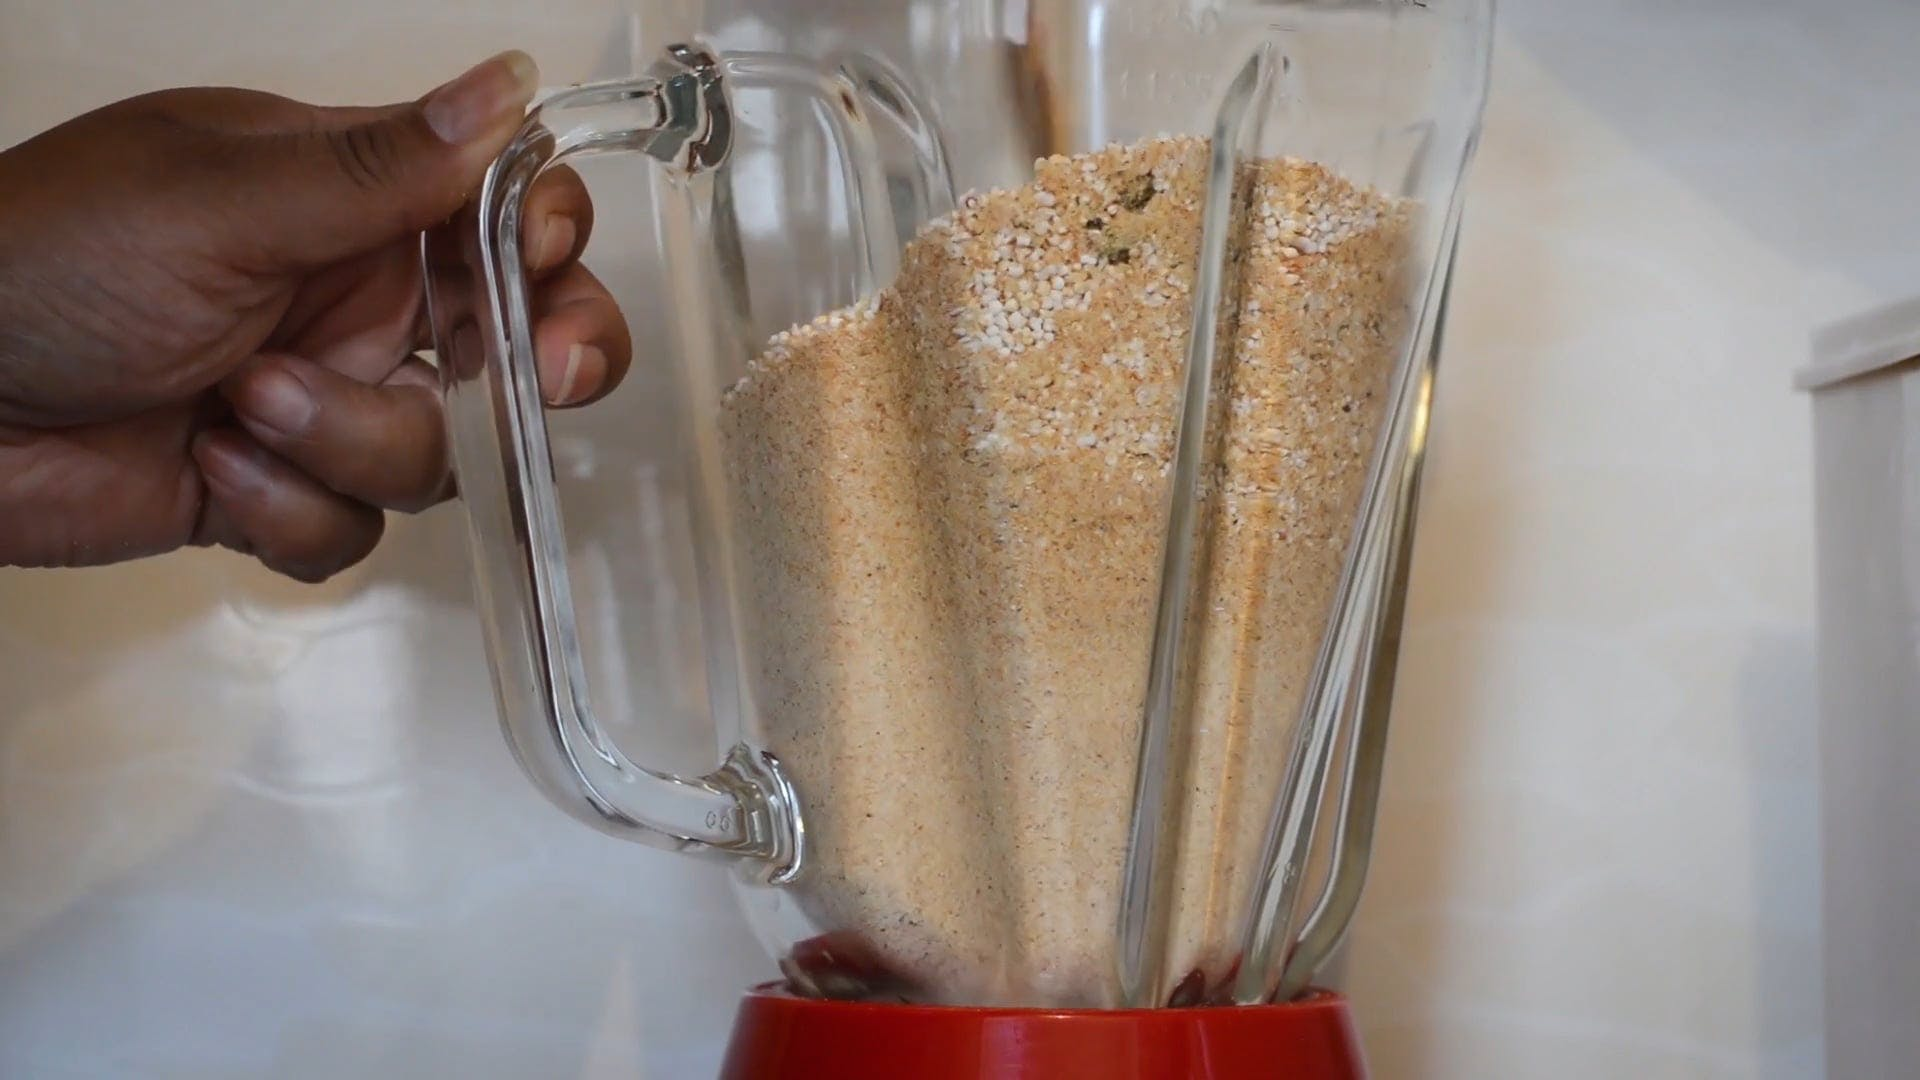 Powdered Mixture In A Blender